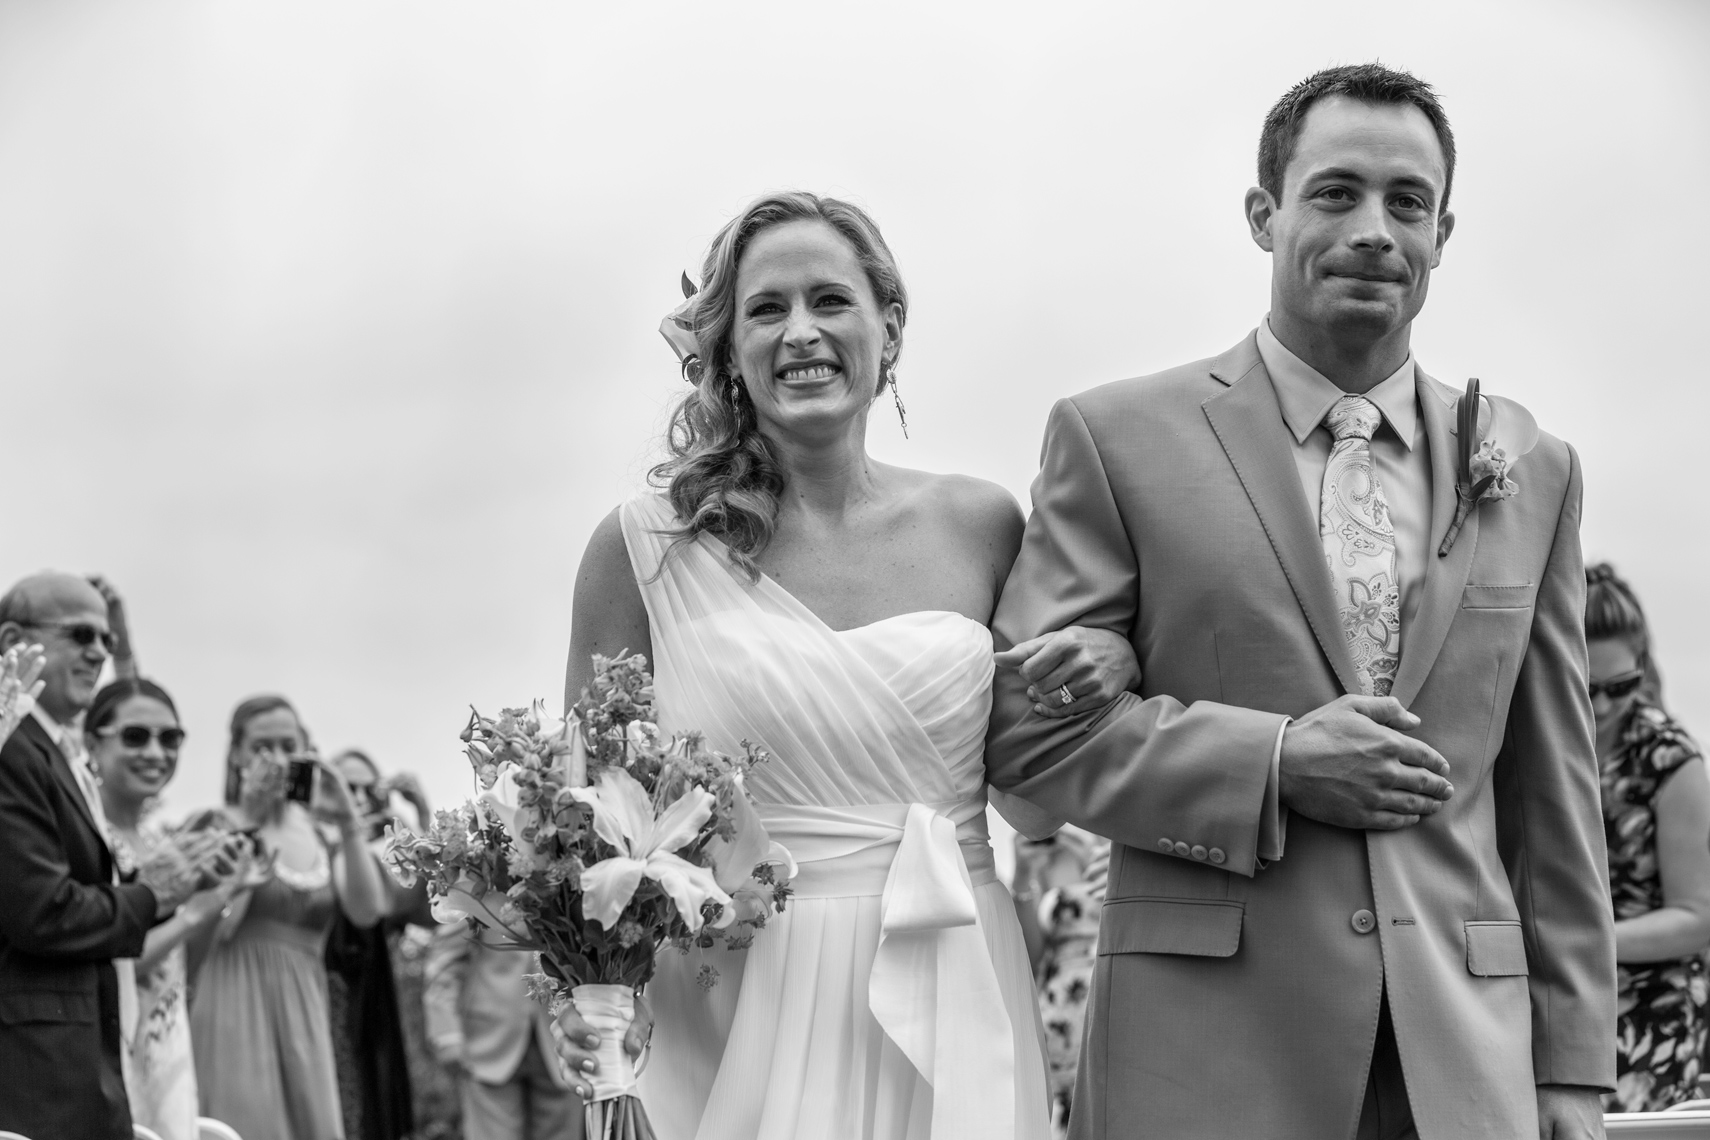 WeddingCouple_BW_nbphotog